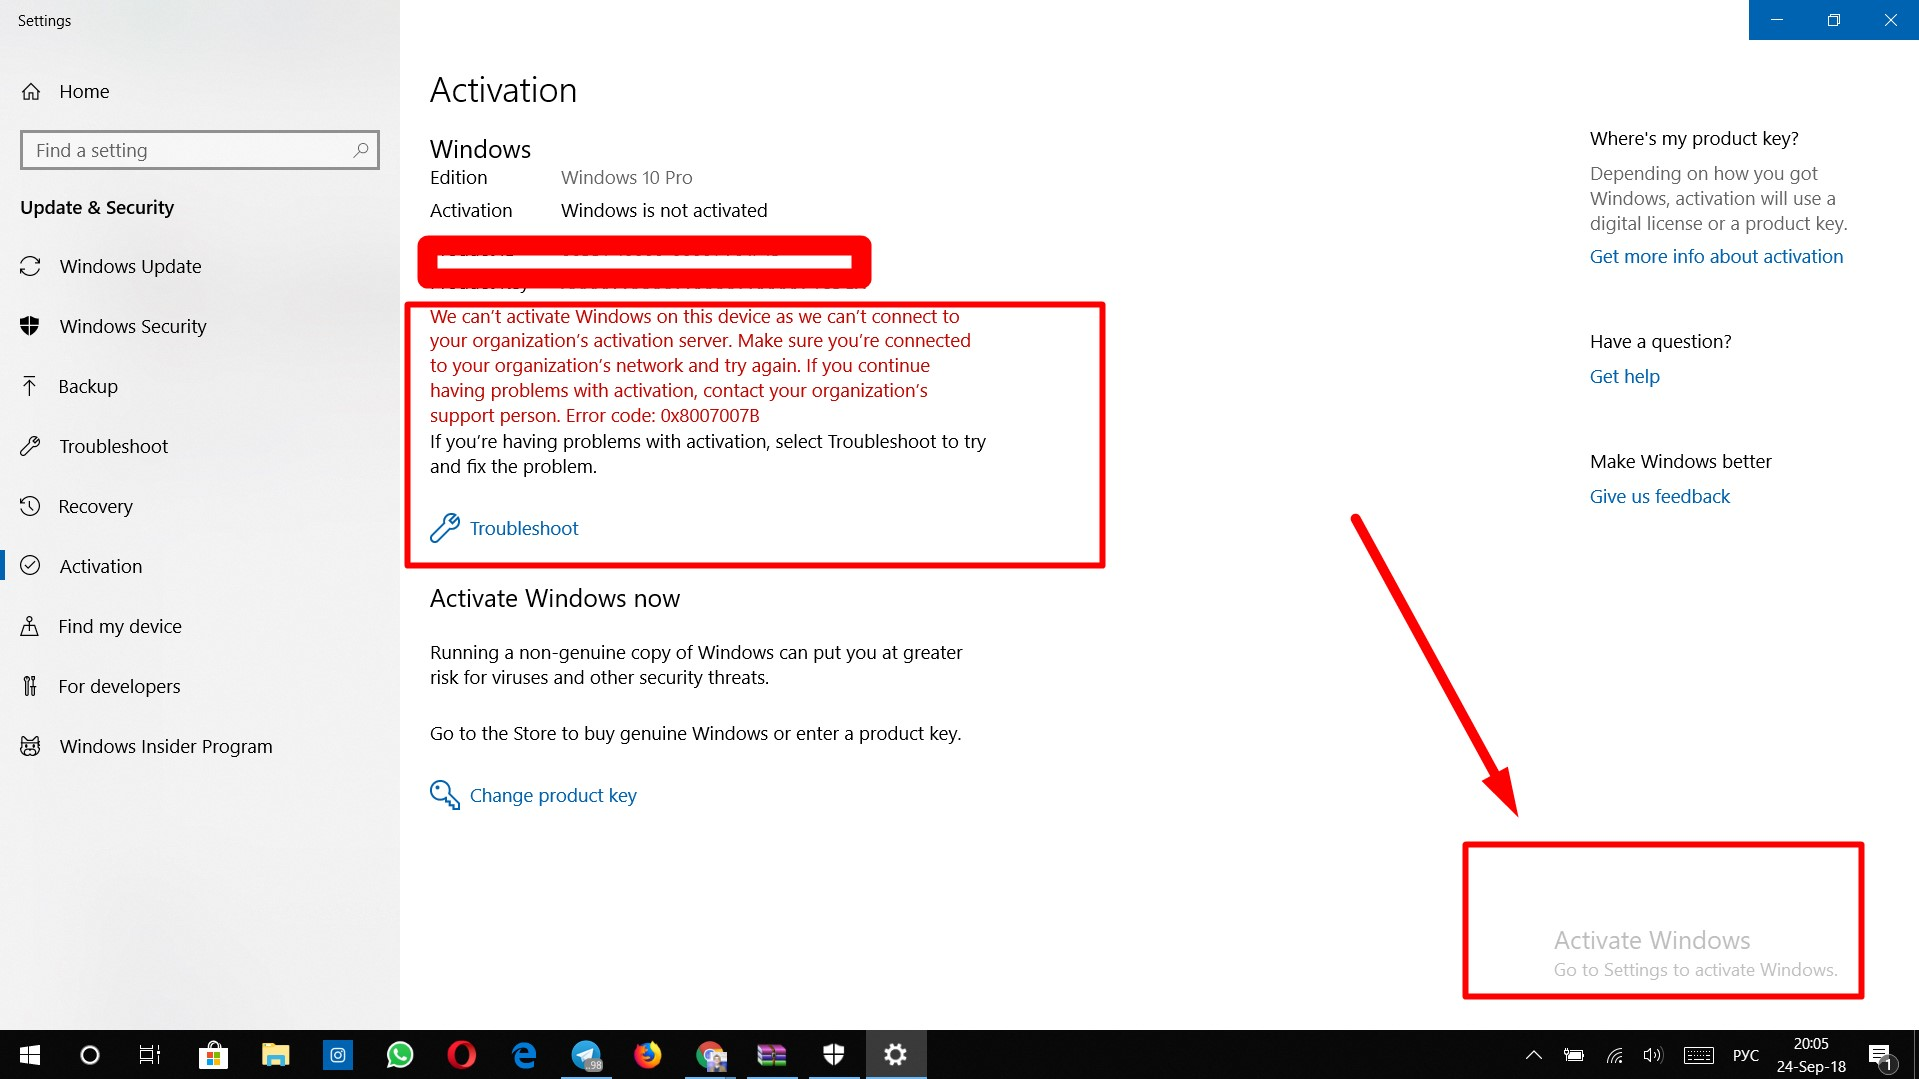 activate windows go to settings to activate windows 10 fix